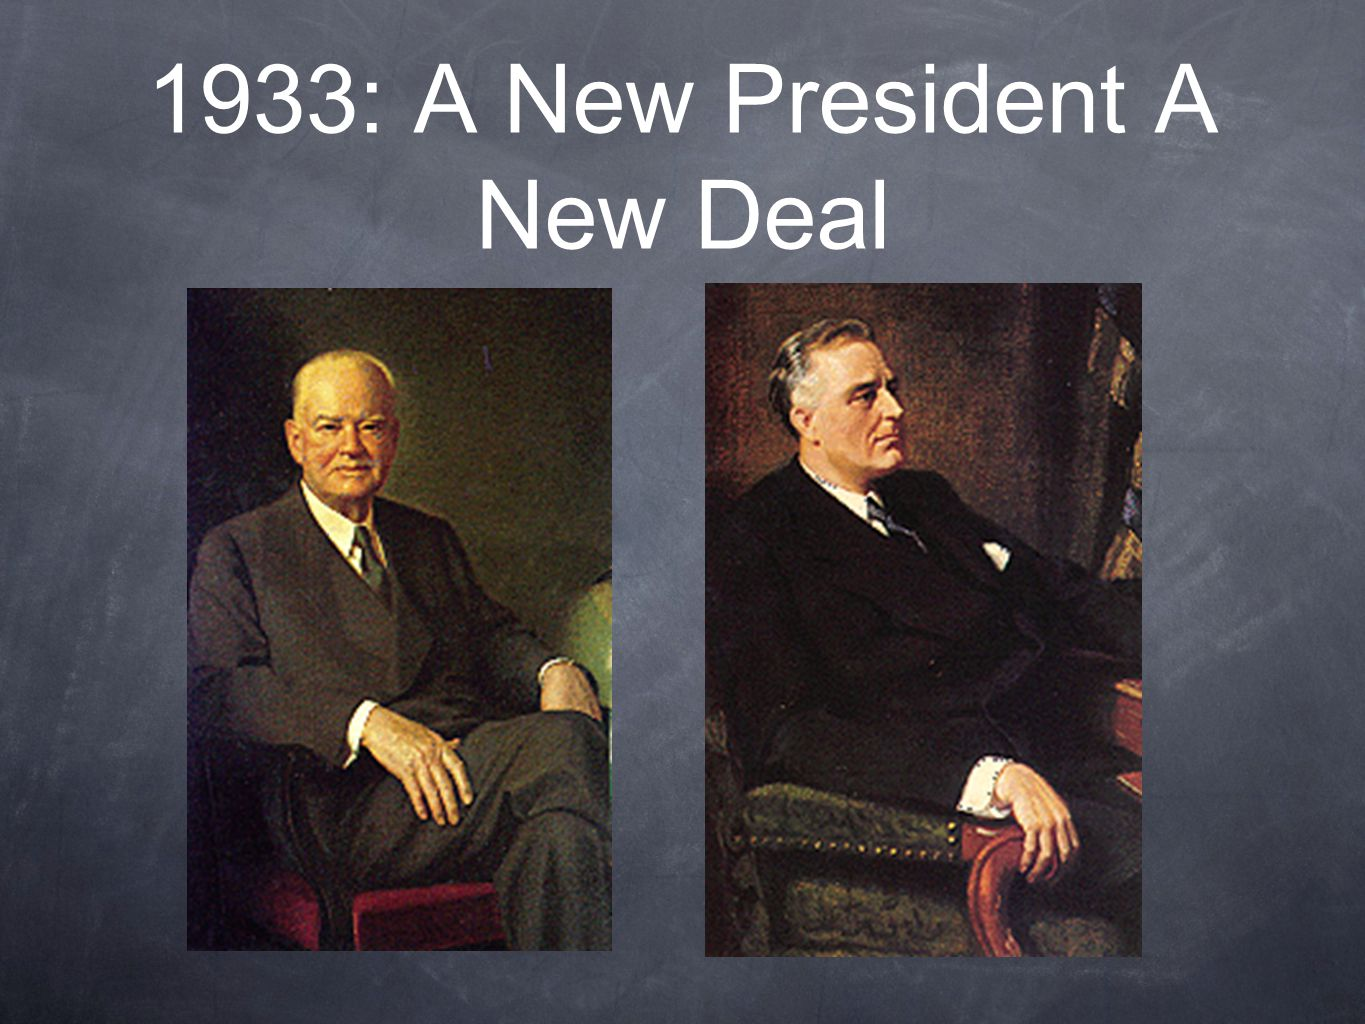 1933: A New President A New Deal